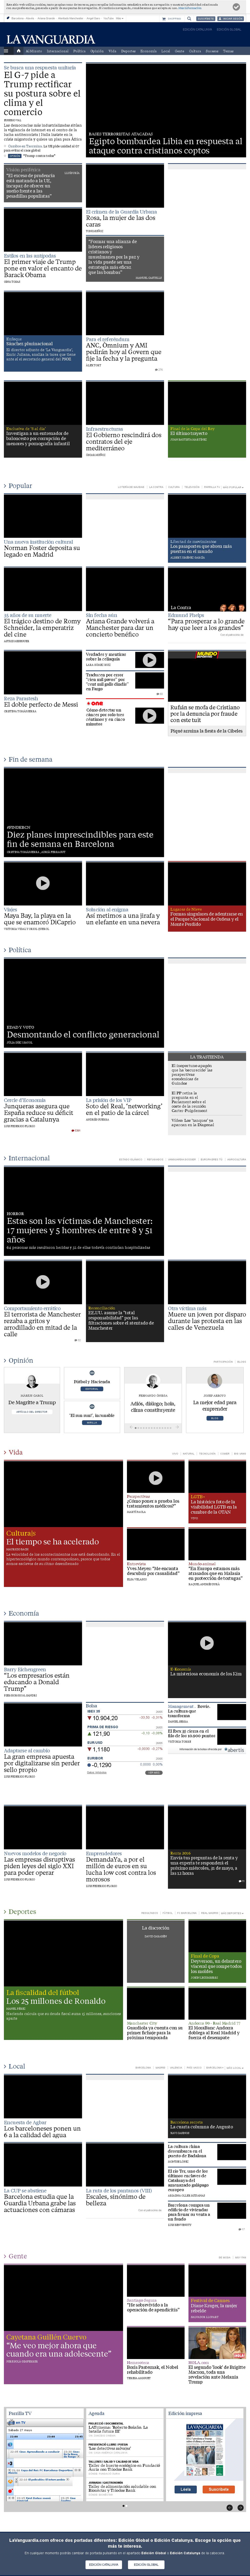 La Vanguardia at Saturday May 27, 2017, 4:38 a.m. UTC